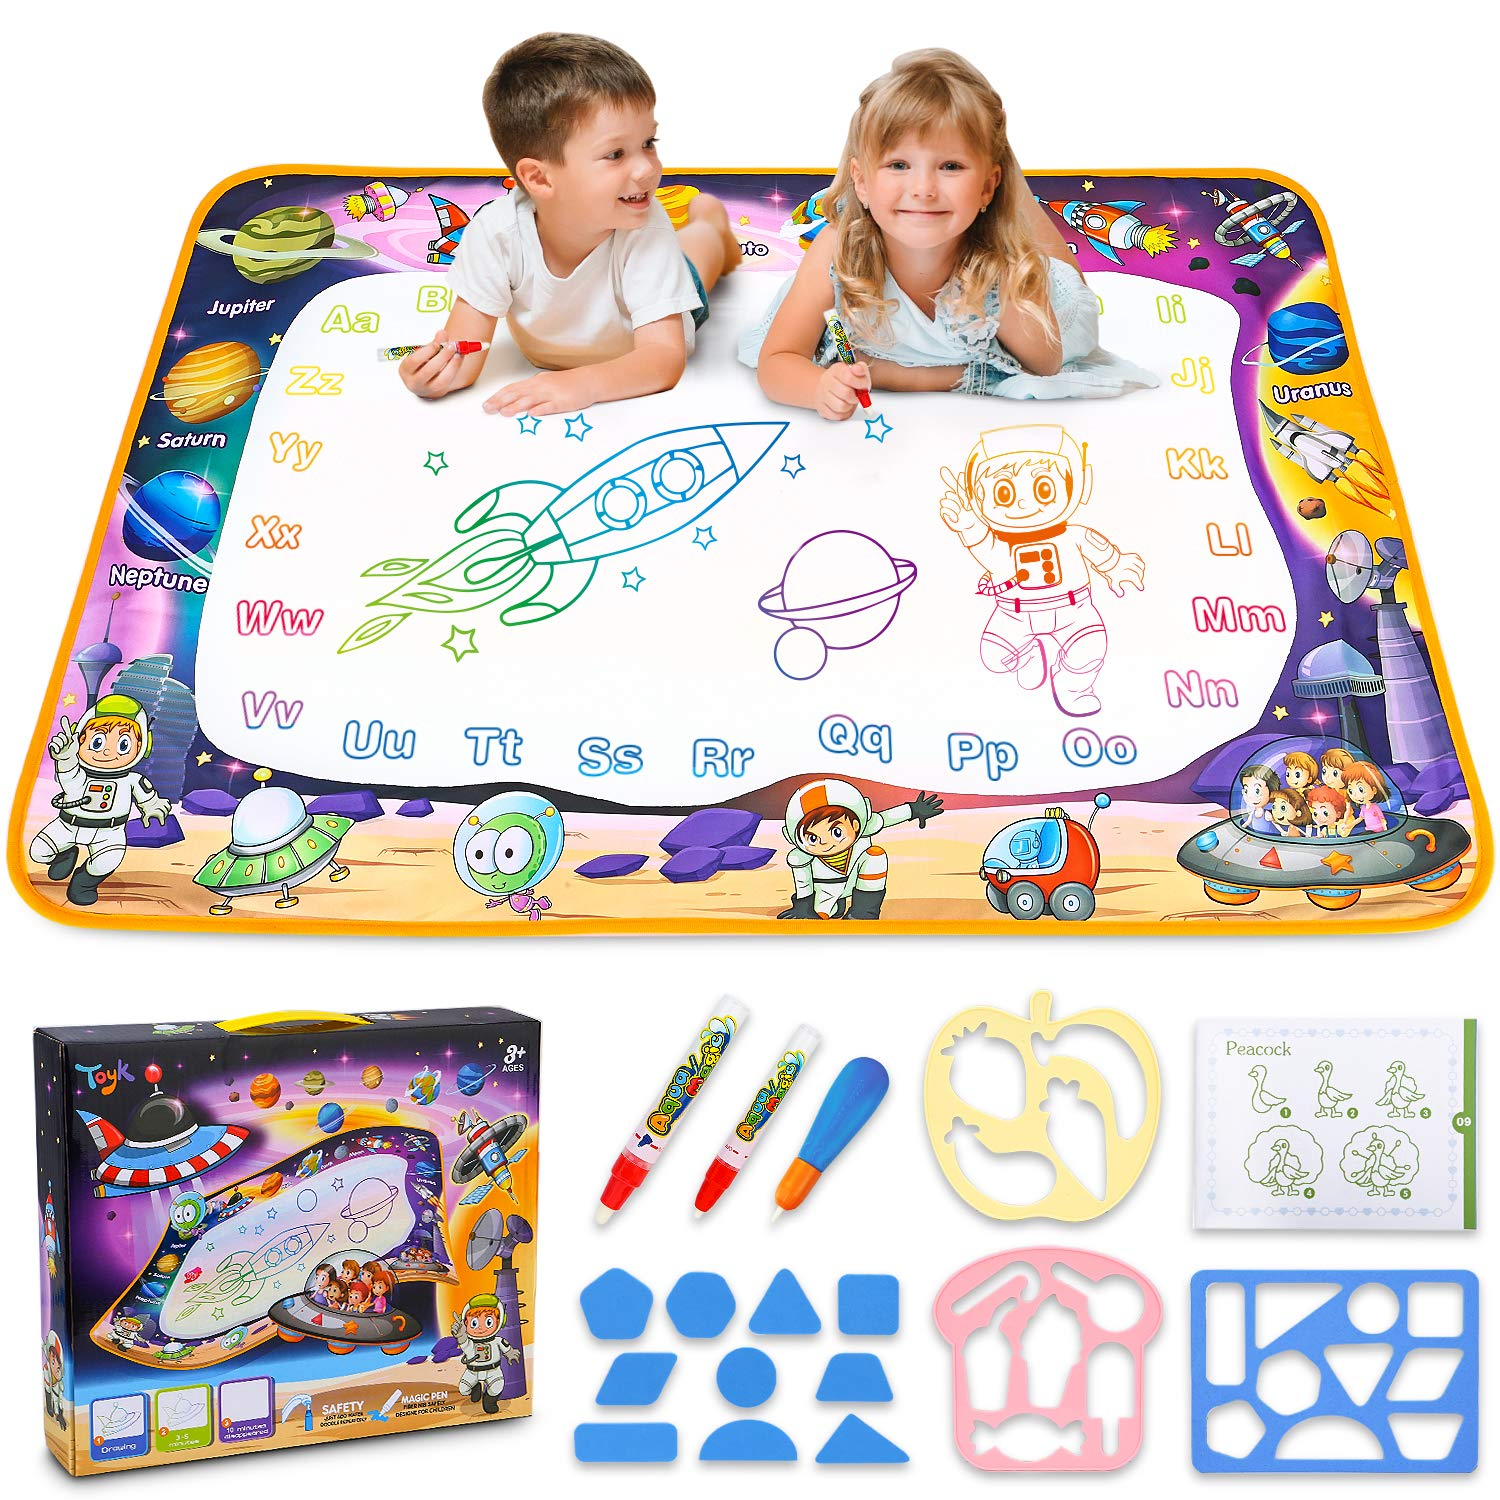 Aqua Magic Mat - Kids Painting Writing Doodle Board Toy - Color Doodle Drawing Mat Bring Magic Pens Educational Toys for Age 3 4 5 6 7 8 9 10 11 12 Year Old Girls Boys Age Toddler Gift